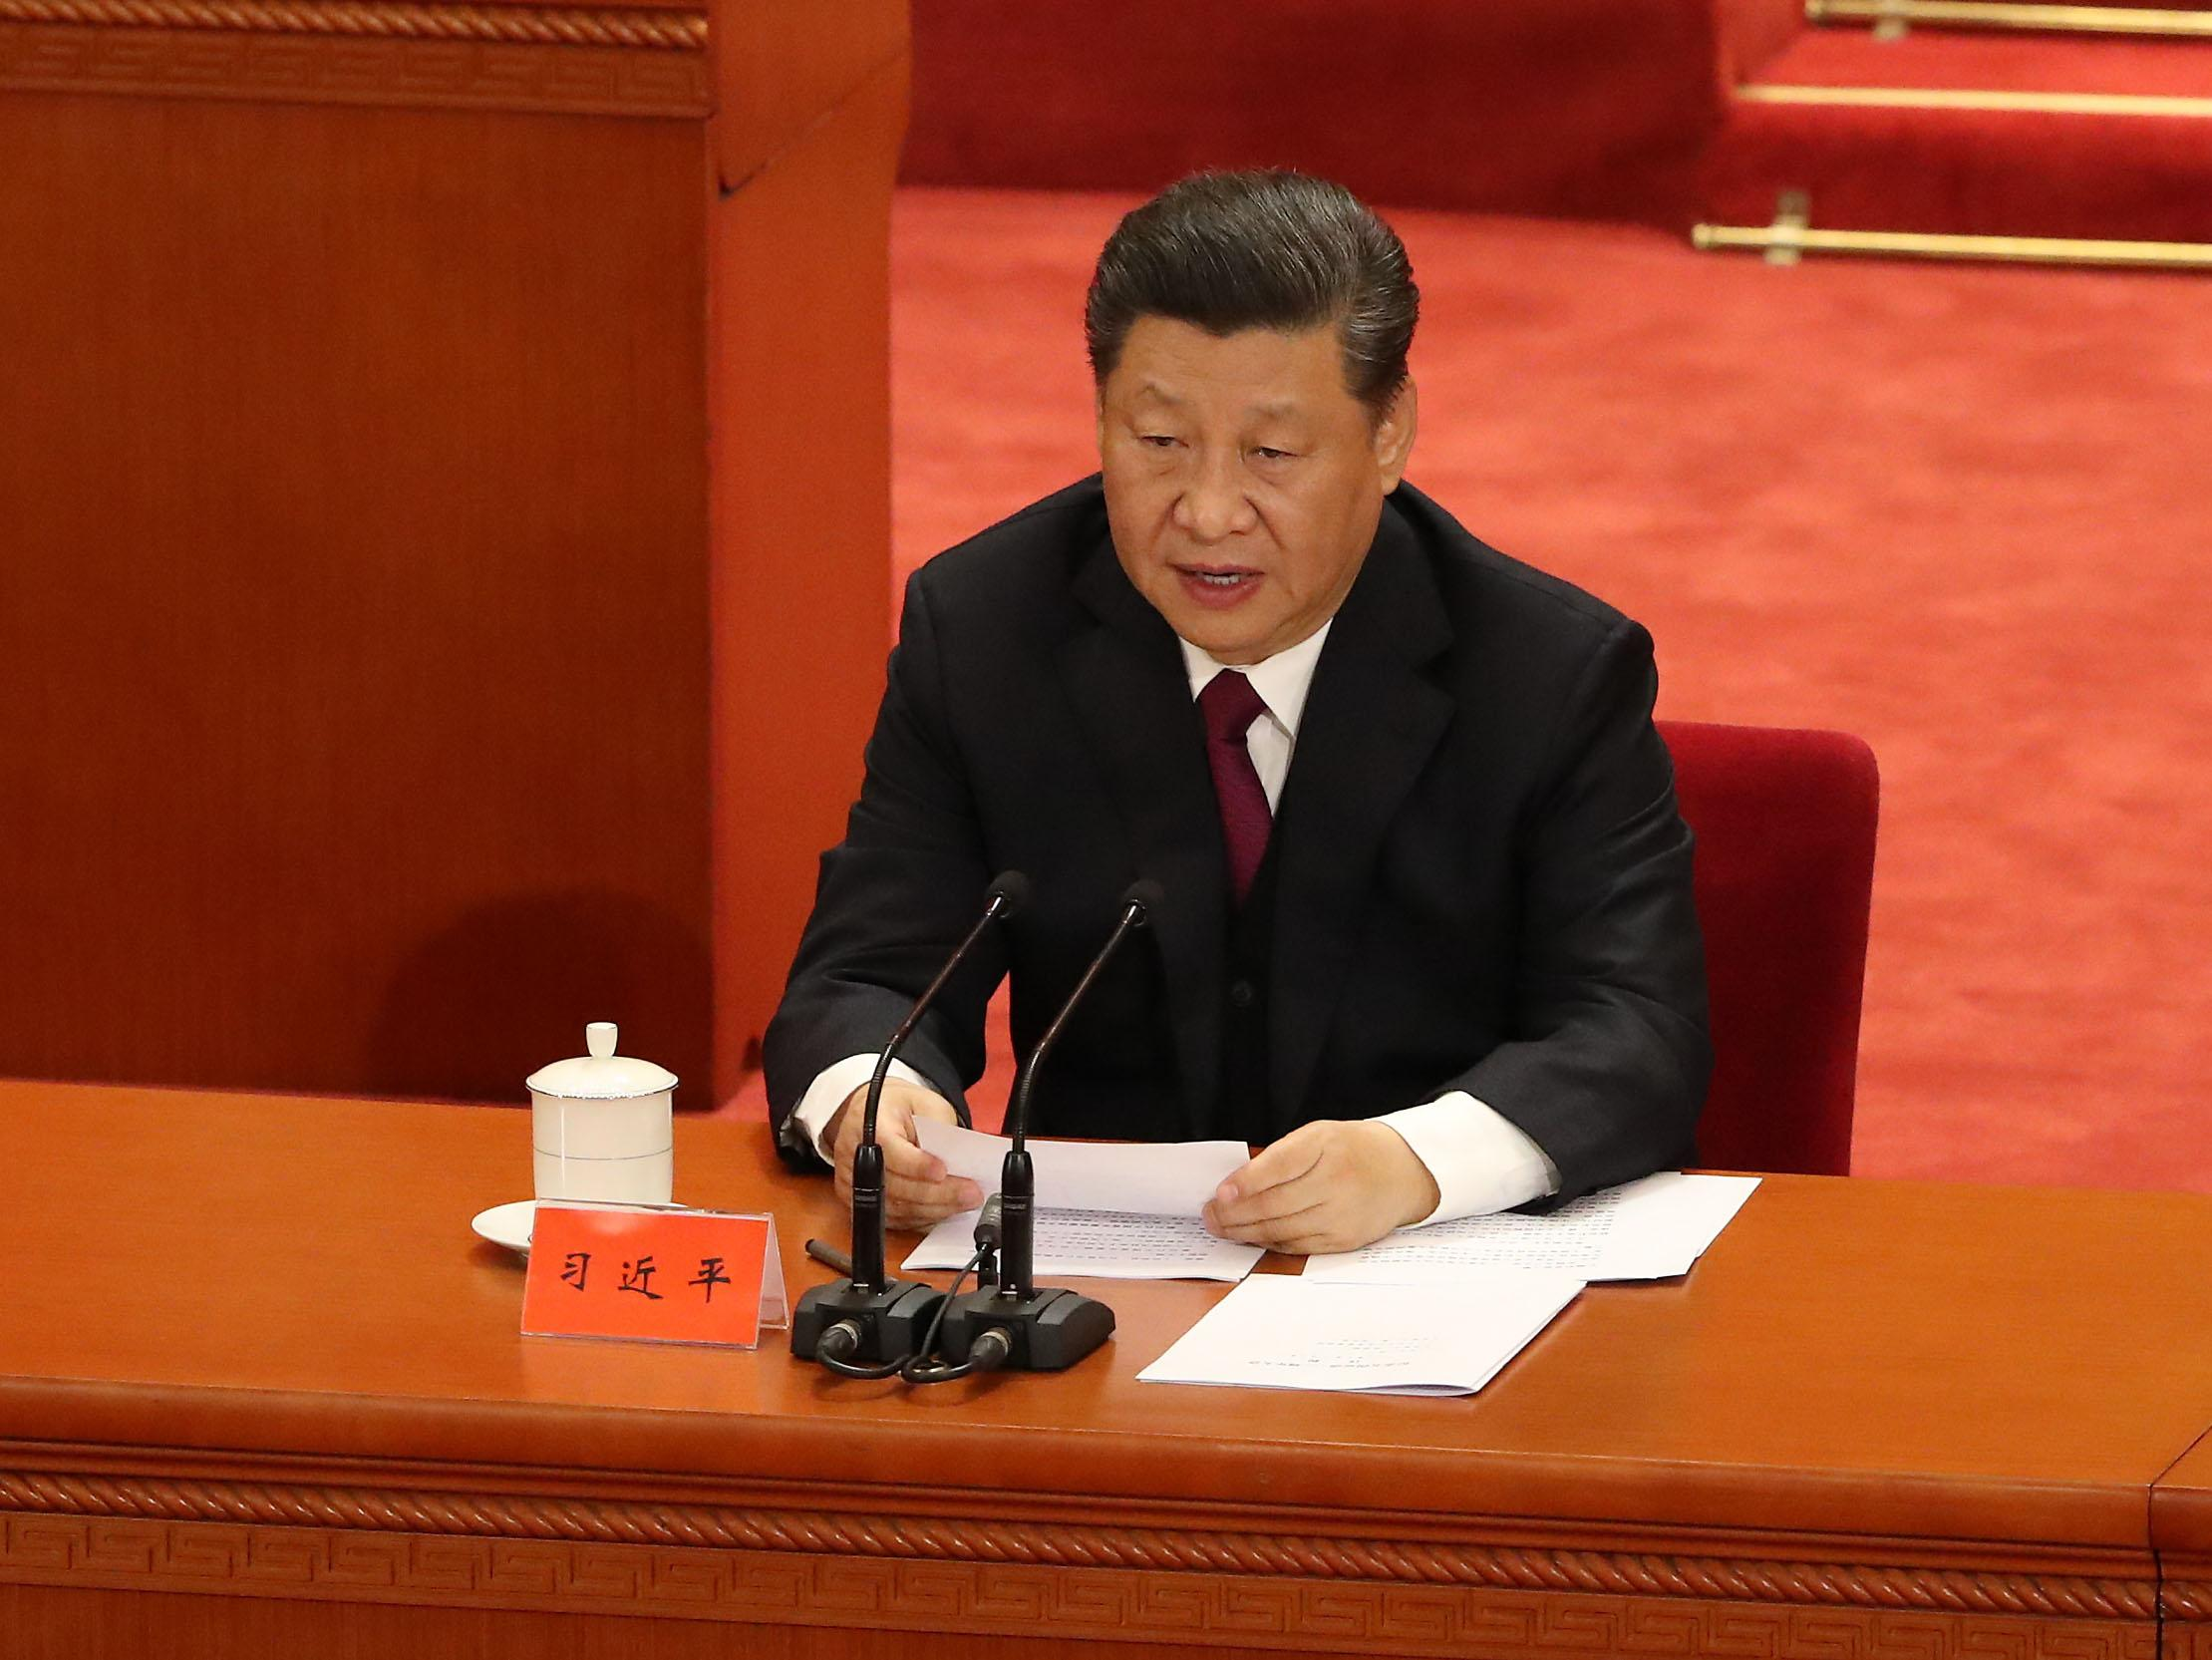 China's investigative journalists warn they are 'almost extinct' under Xi Jinping's strict censorship regime